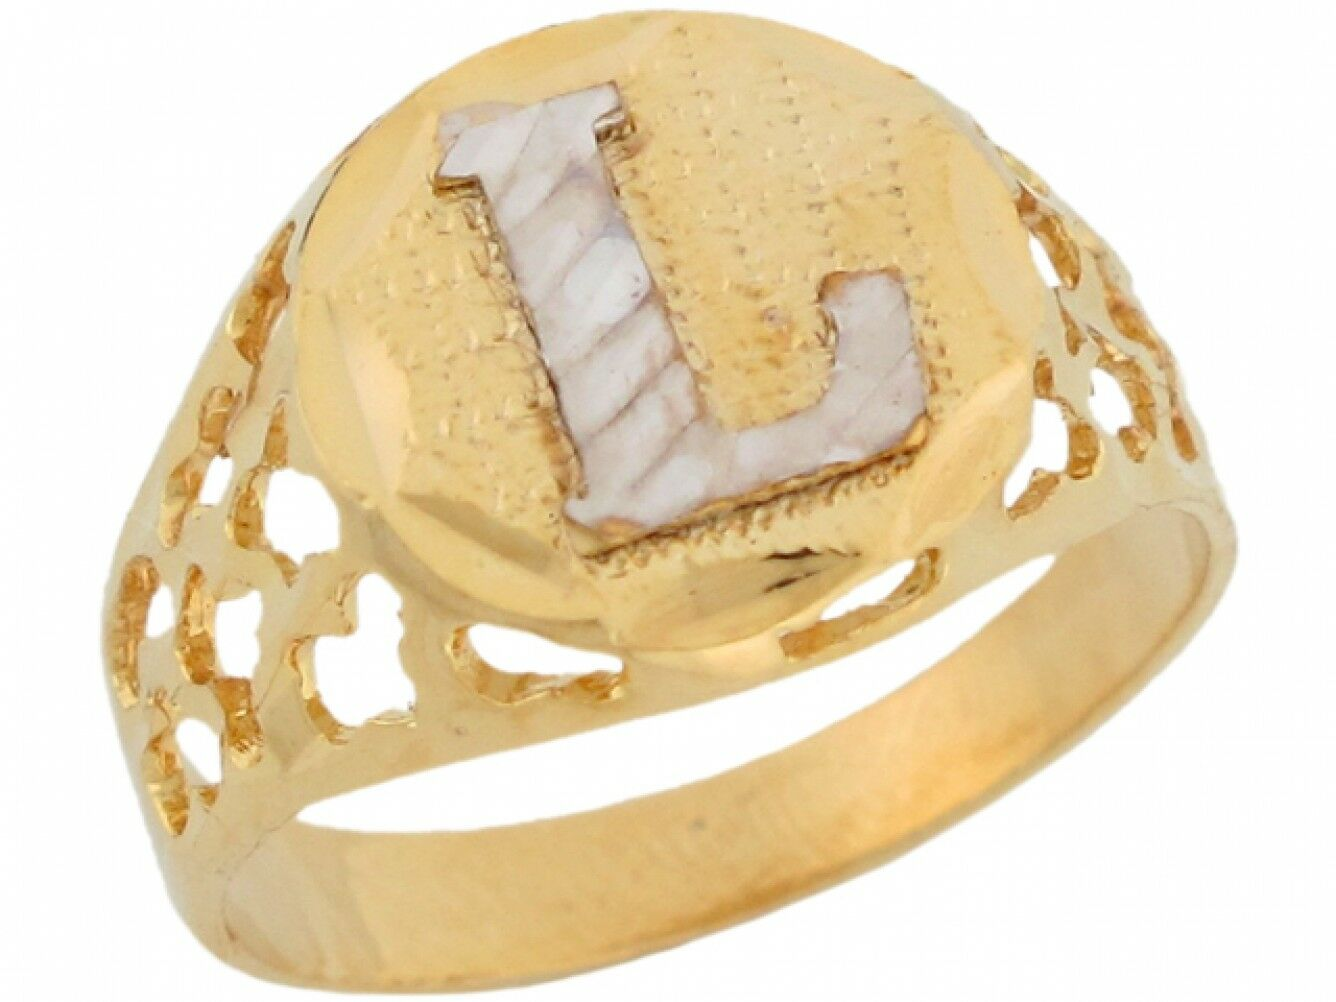 10k or 14k Two Tone gold Unique Filigree Letter L Stylish Ladies Initial Ring